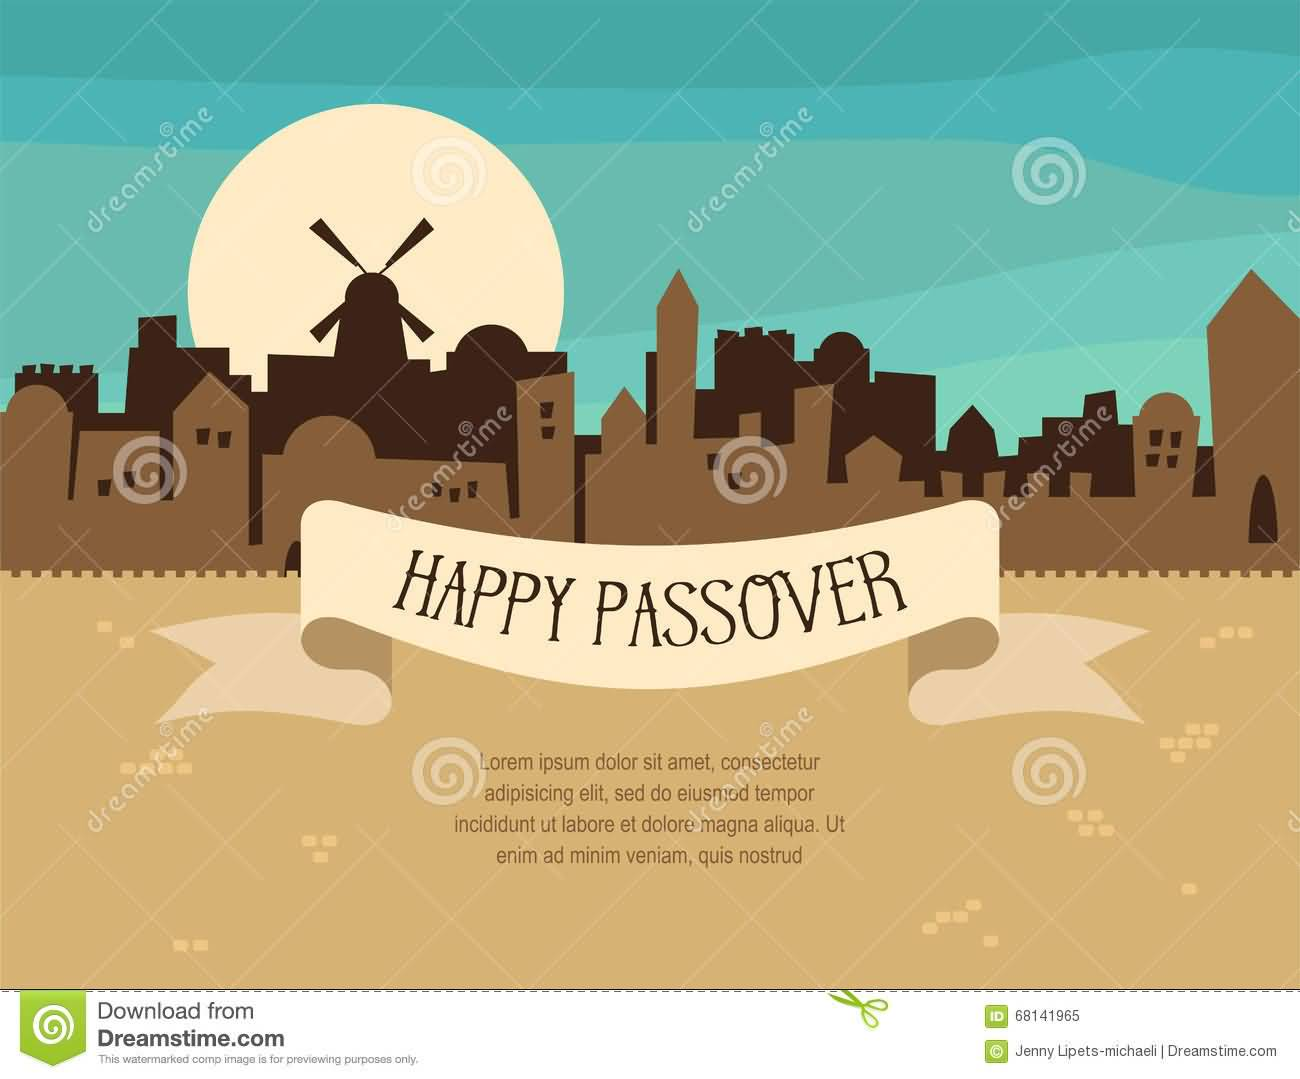 76-Happy Passover Wishes